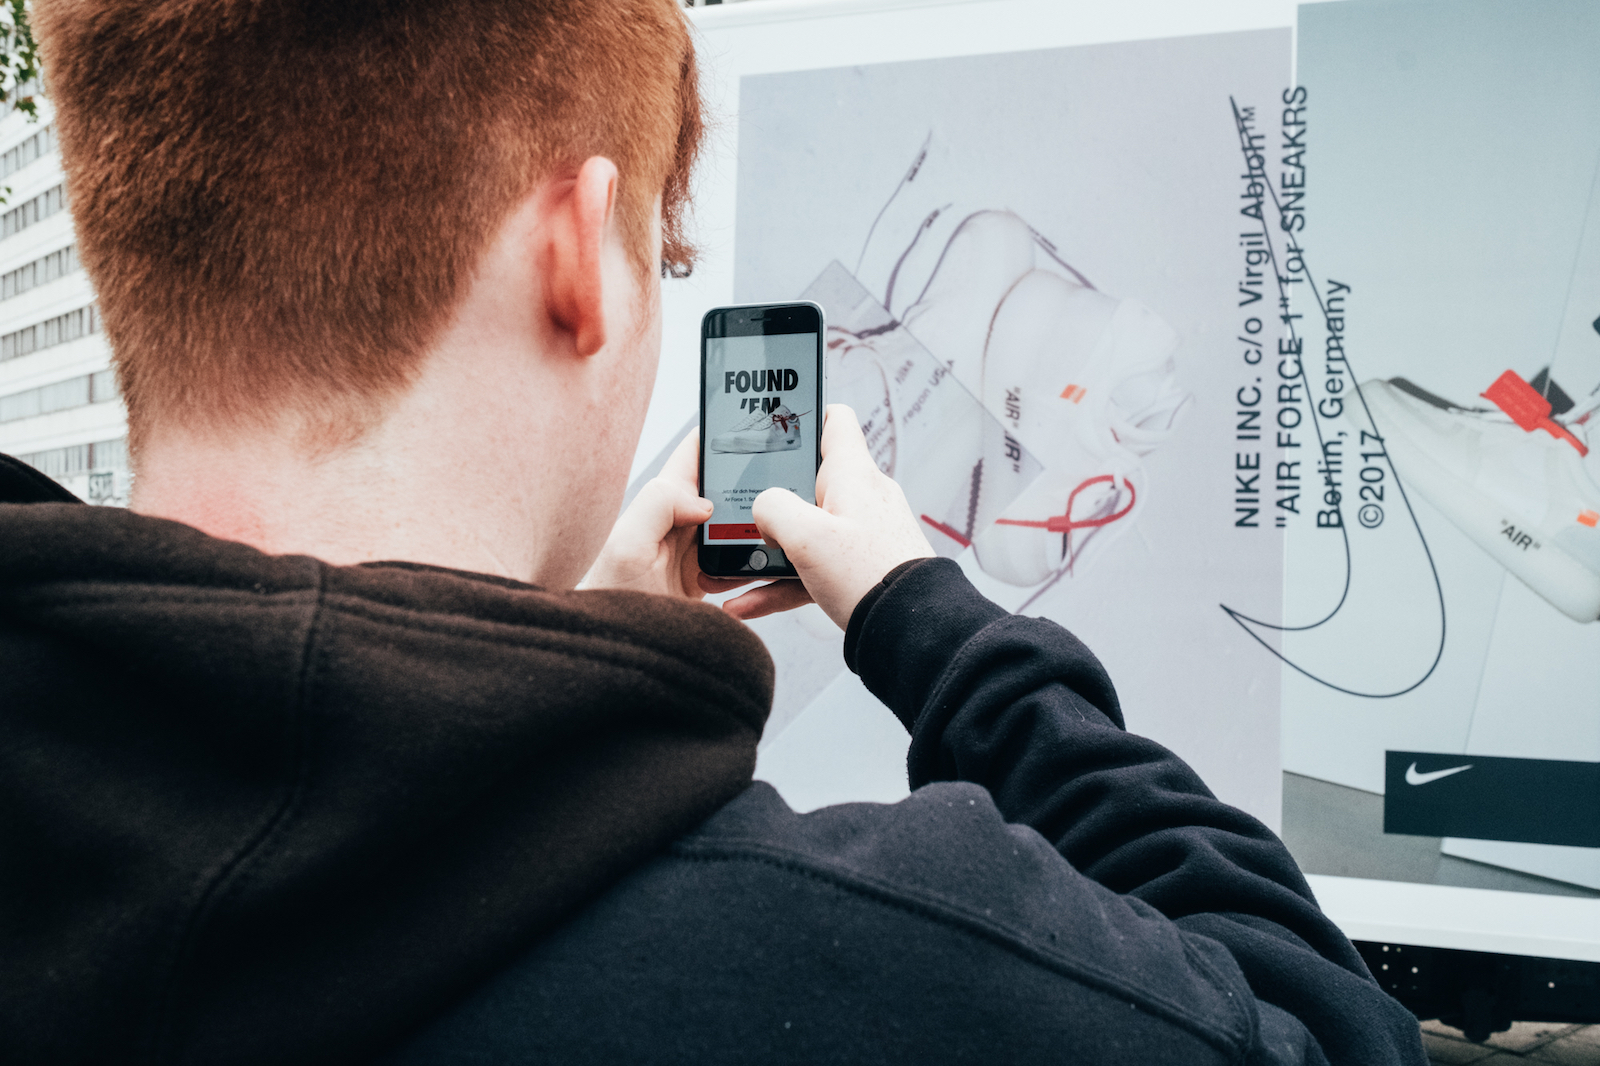 For Nike, augmented reality is the